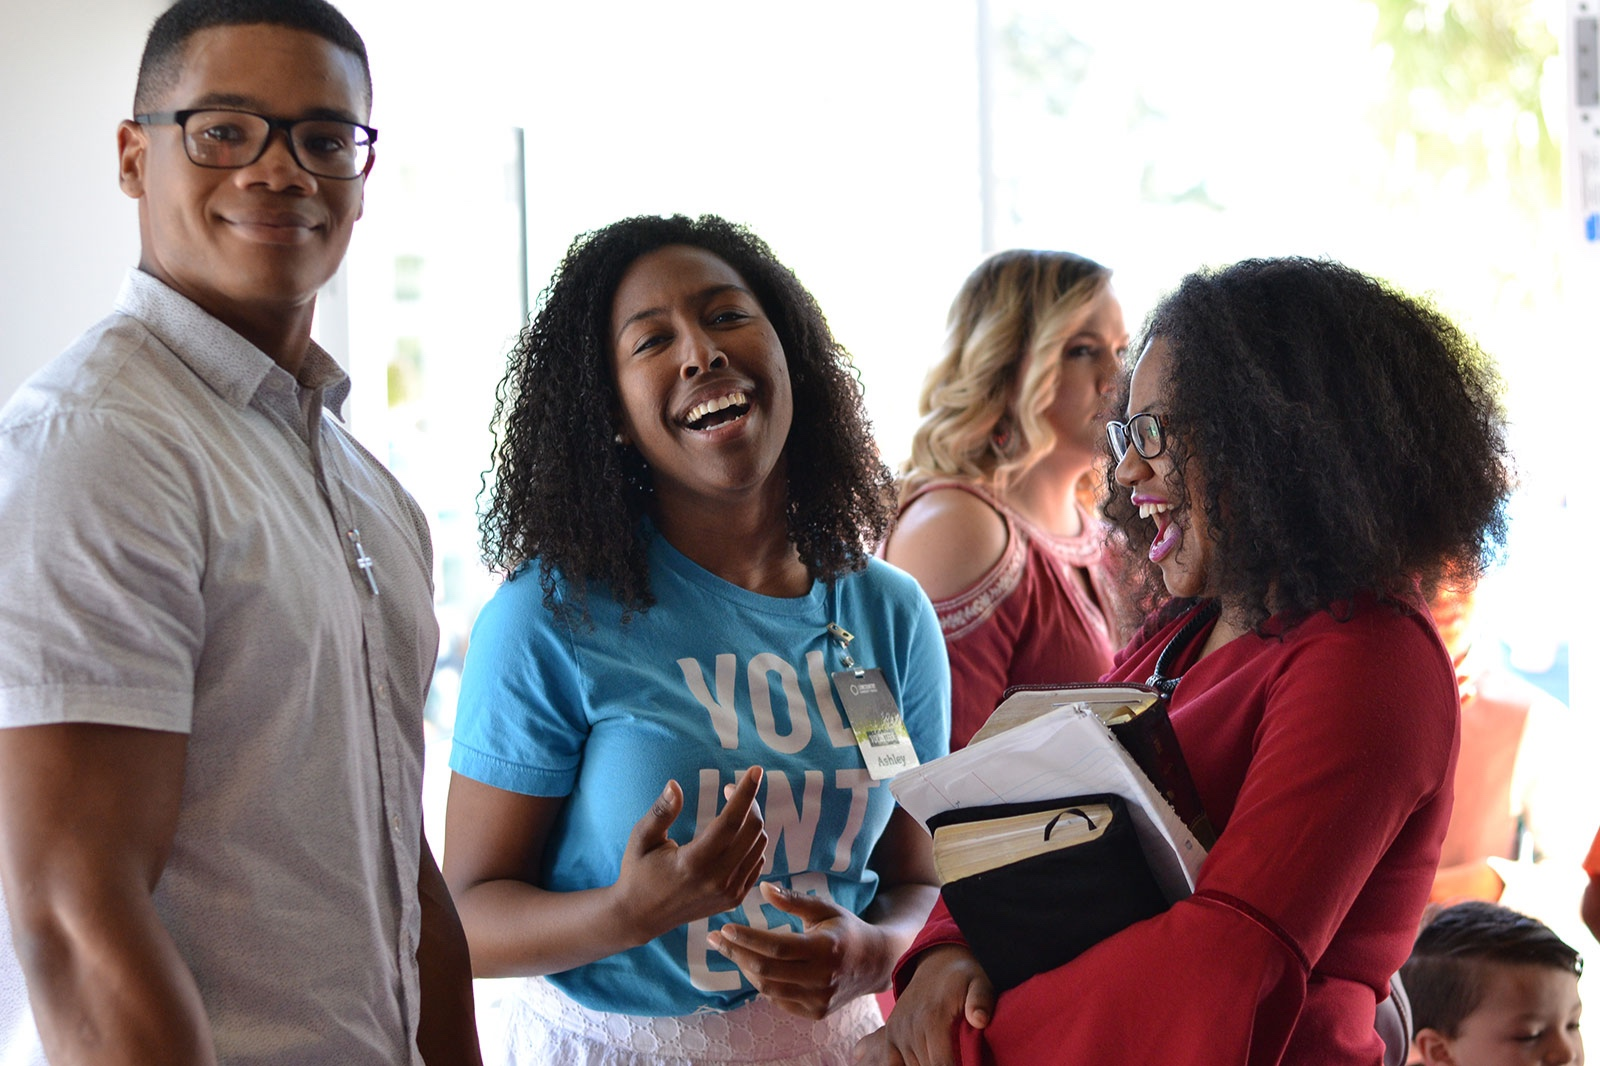 Groups - Joining a group is a great way to know people and strengthen your relationship with Jesus Christ. Groups typically consist of 12-16 people and meet weekly. Take a look at available groups to get plugged in and find the group that is right for you.